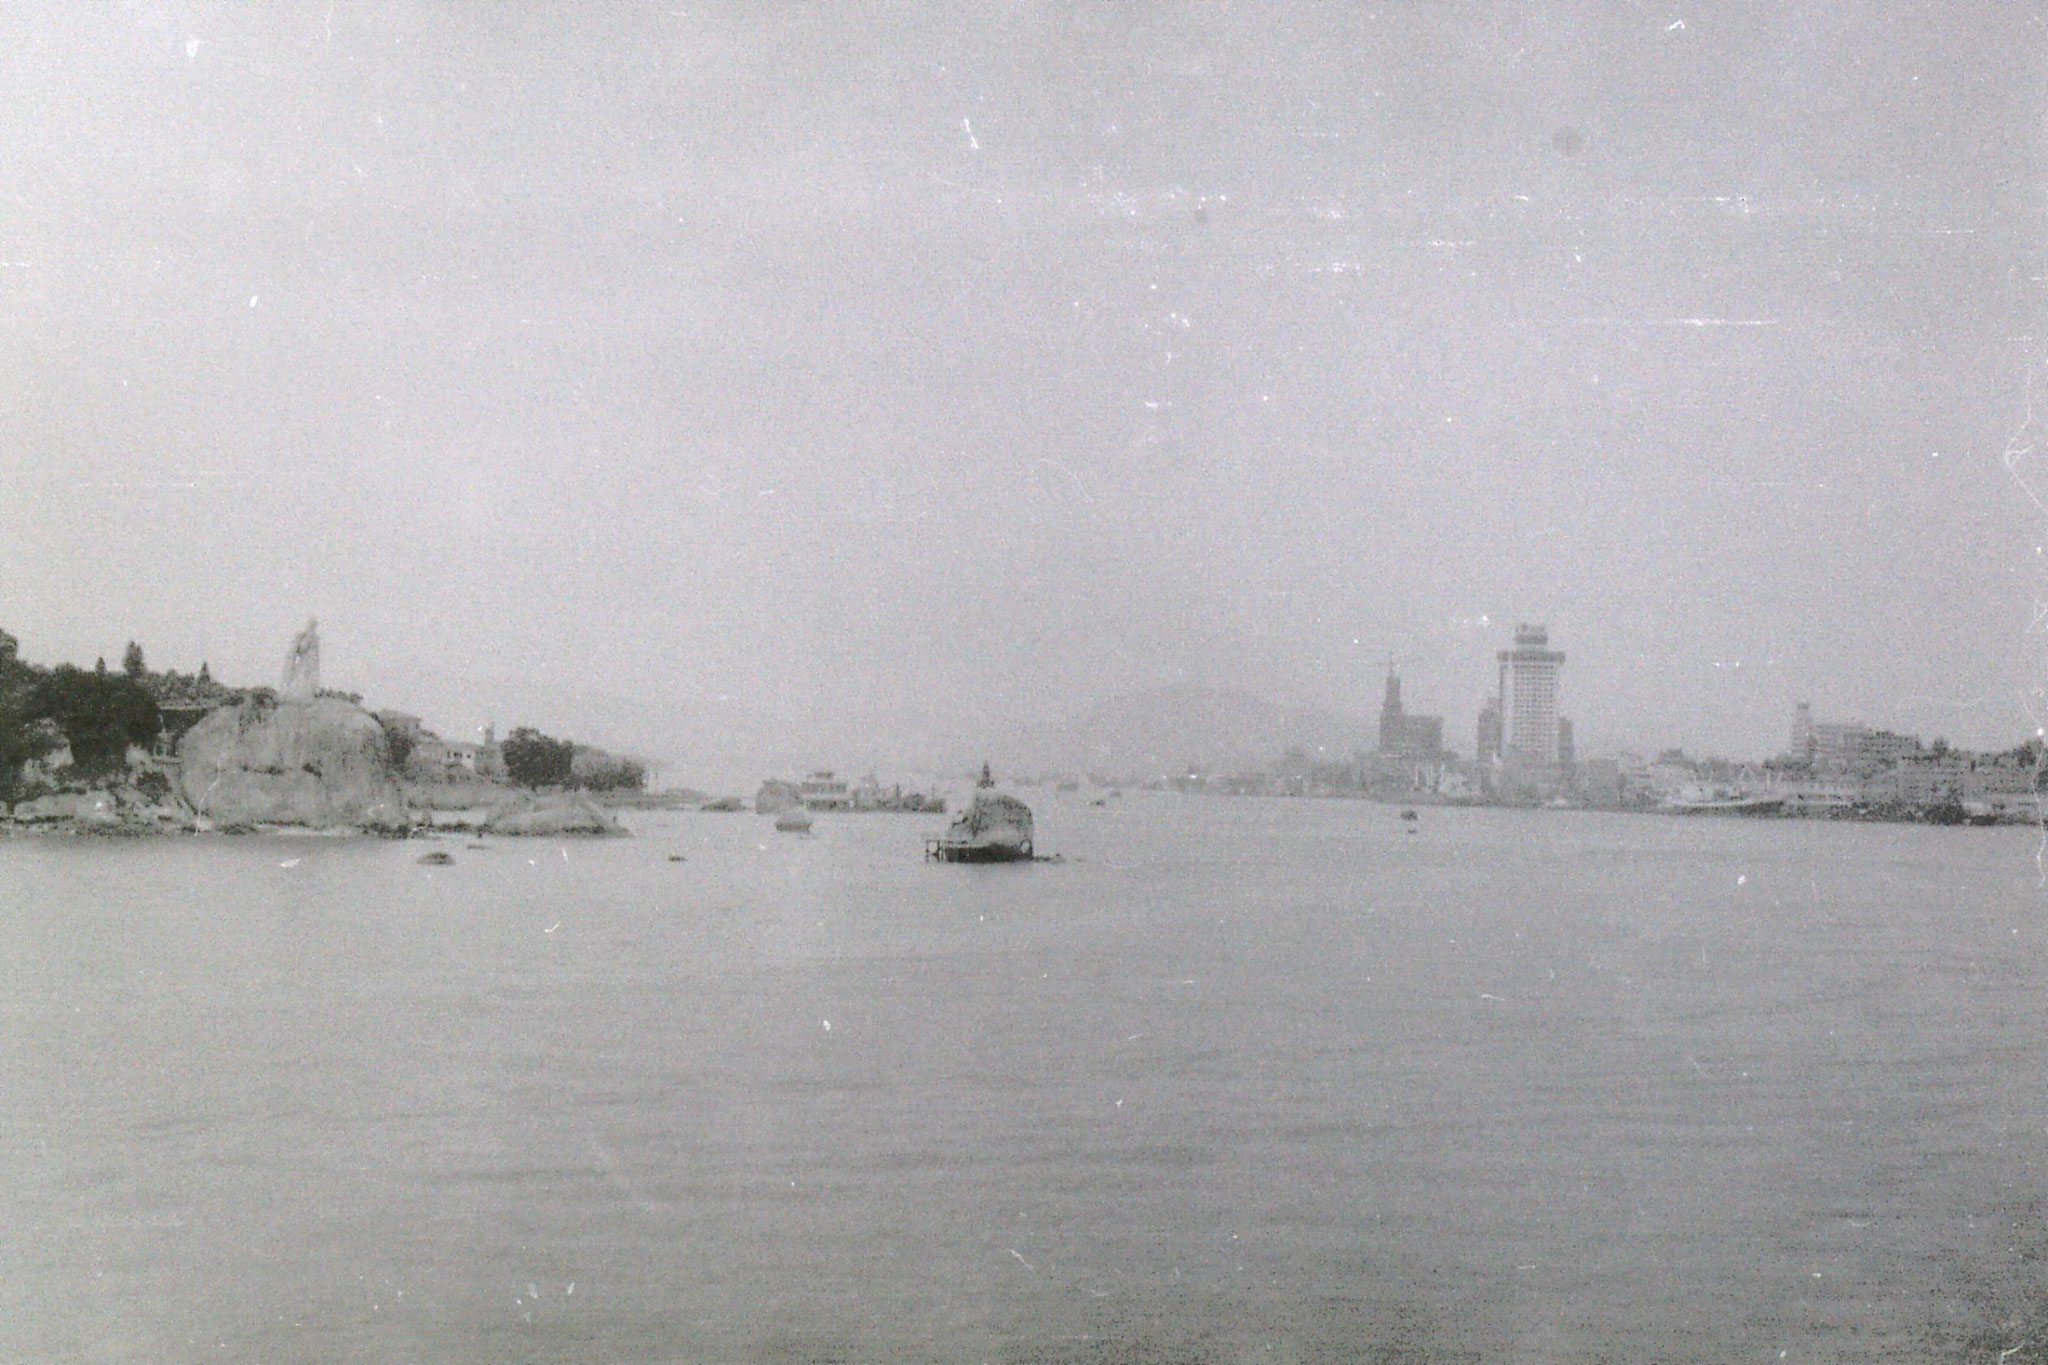 30/3/1989: 1: Gulanggu from ship leaving for Hong Kong